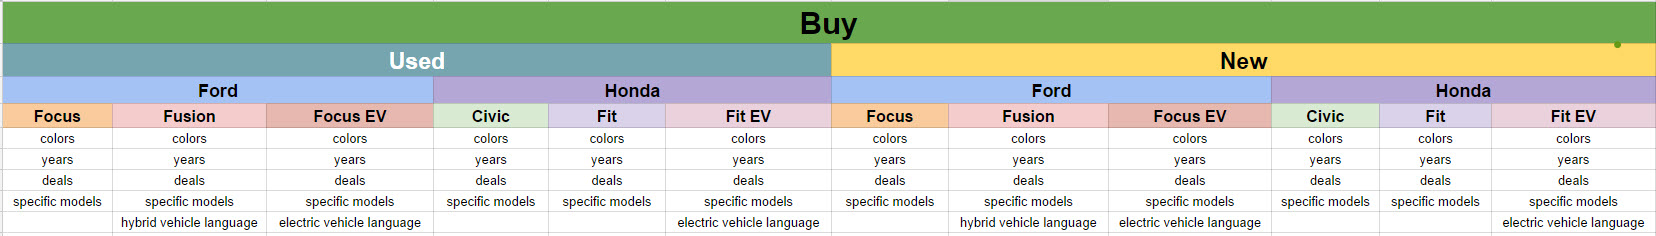 Example hierarchy of different attributes of products